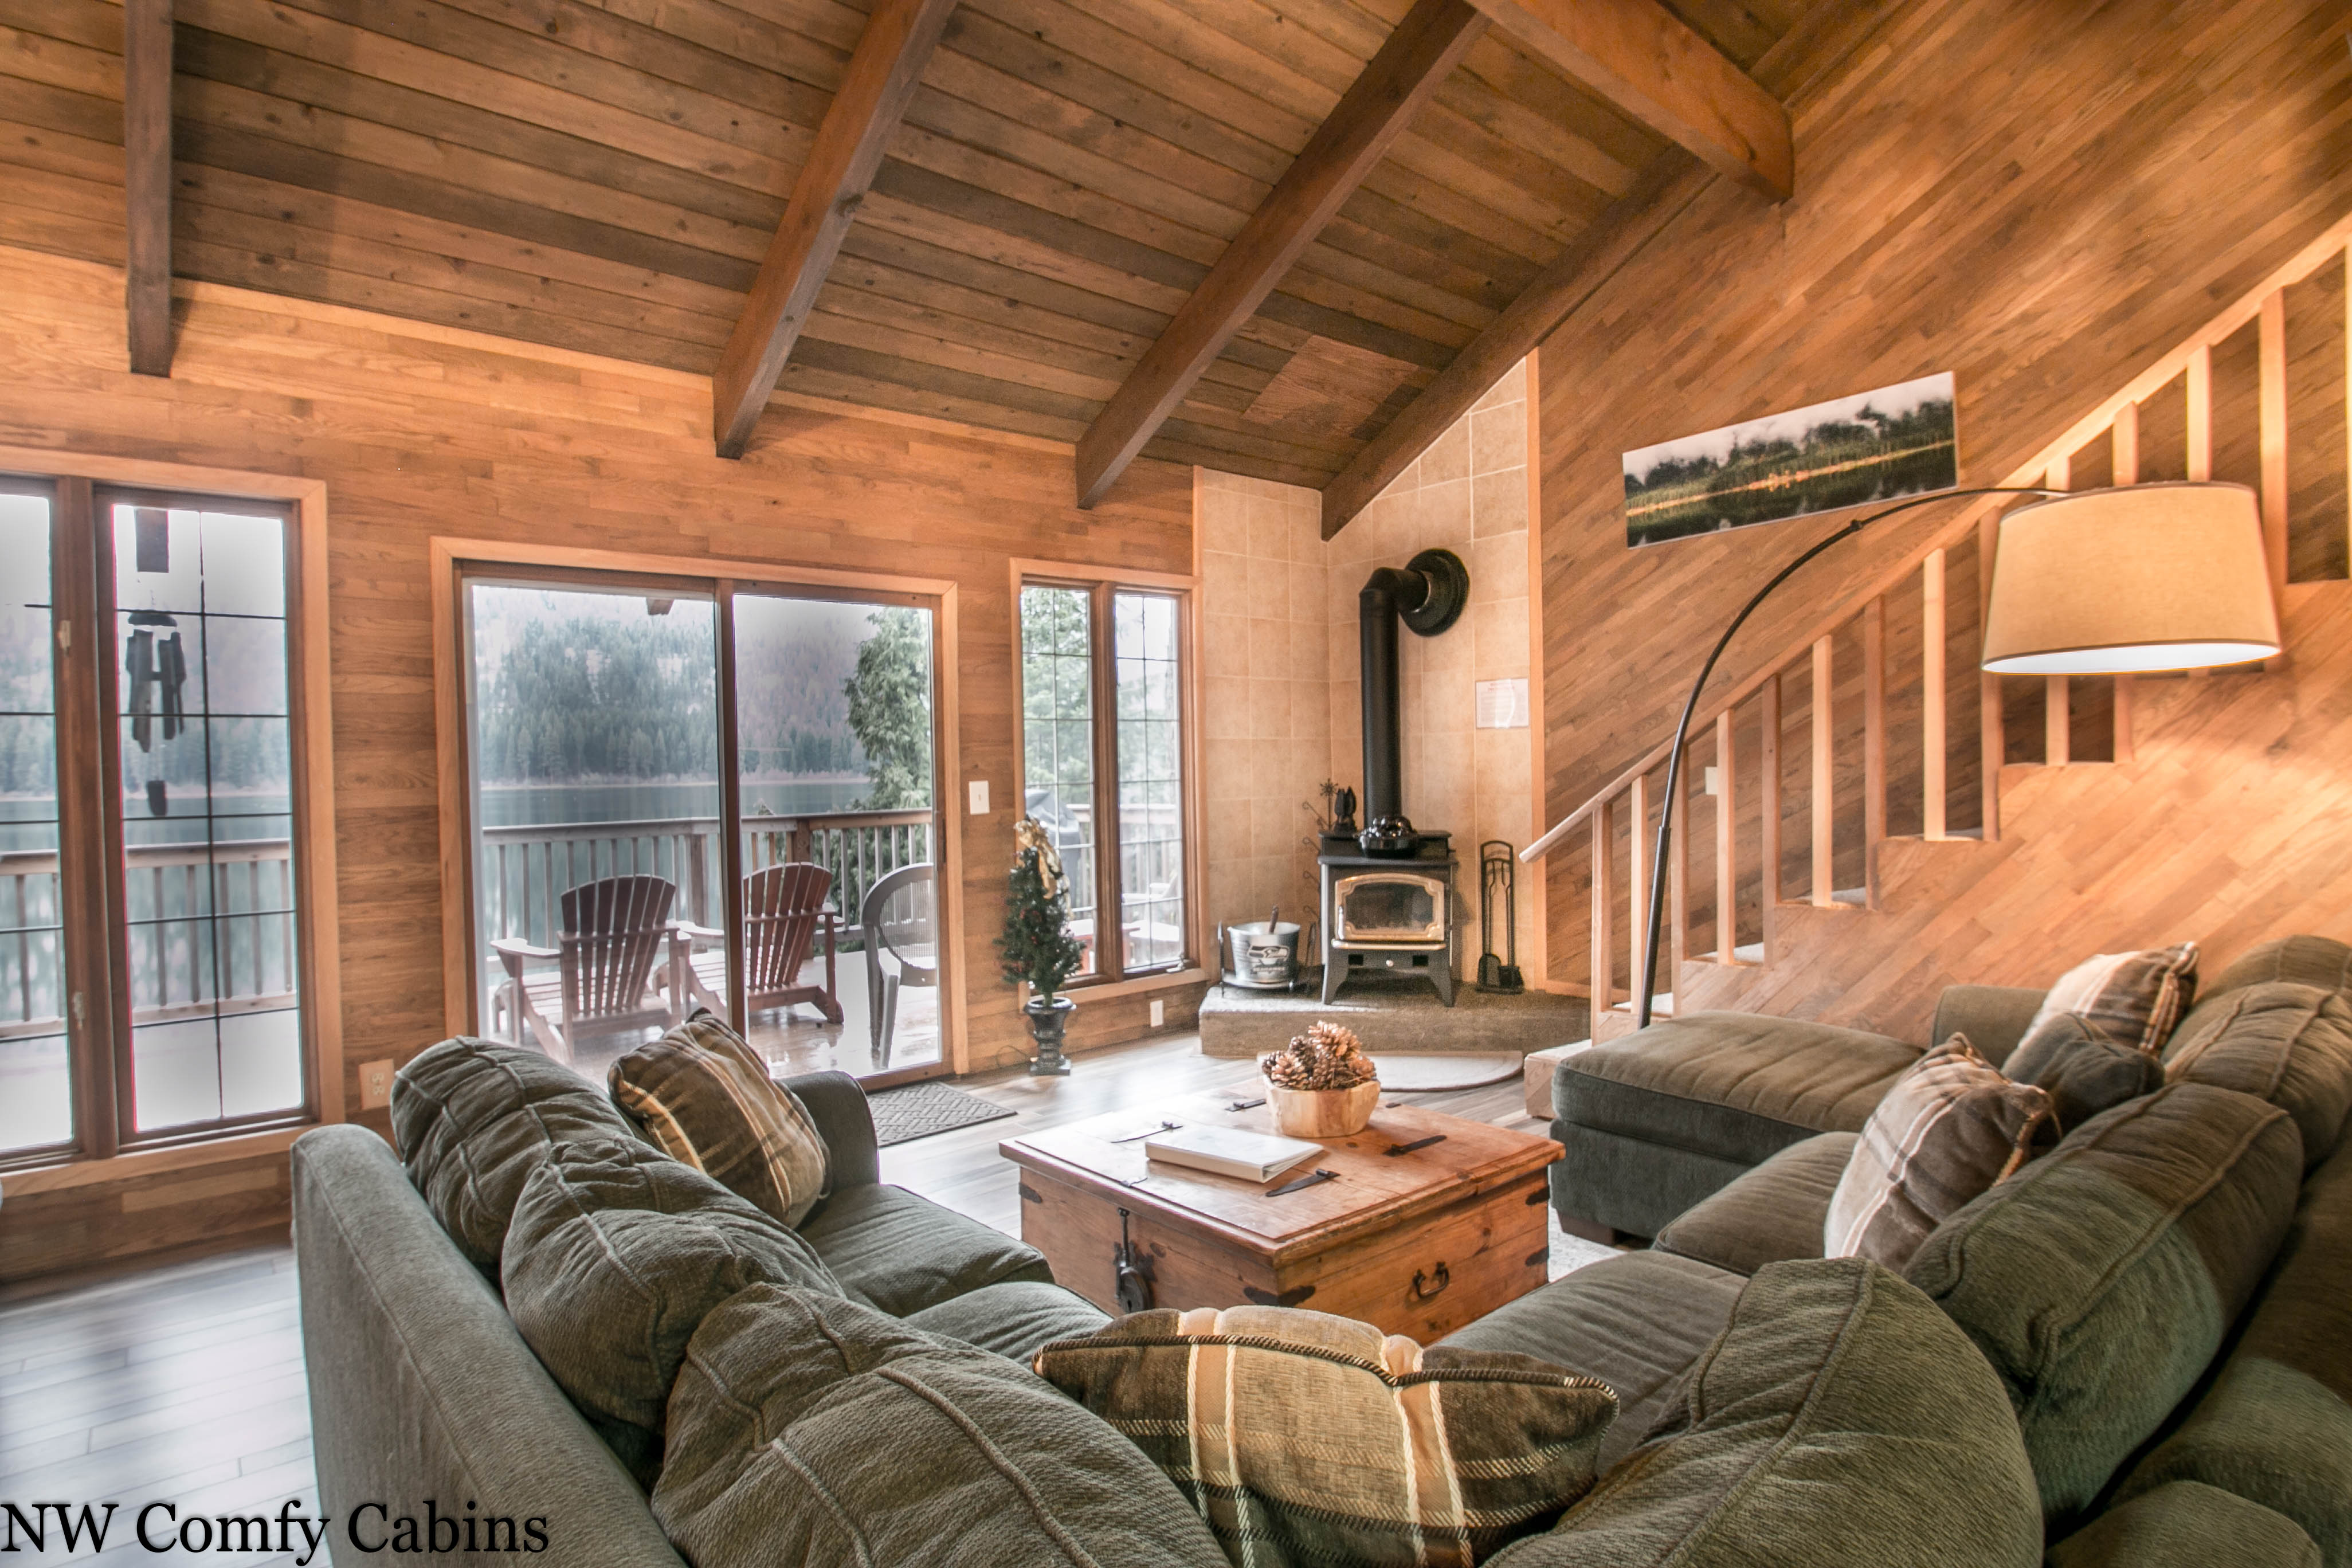 rent settg gatlinburg interior to near cabins rustic mountain smoky me mountains rentals tennessee in